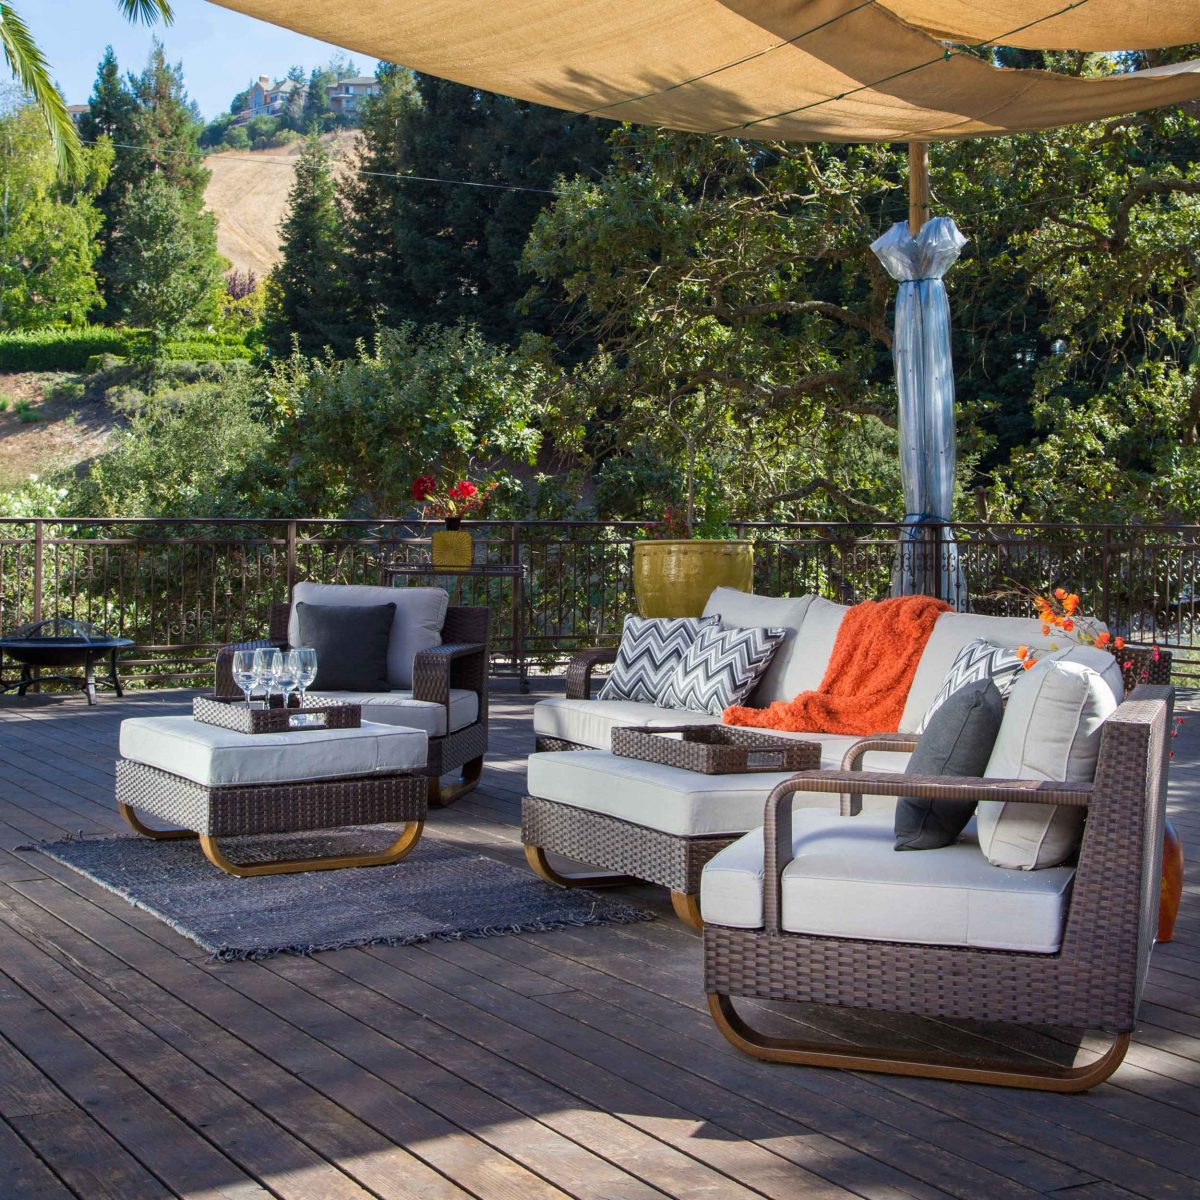 Canopy Covering Outdoor Patio Furniture